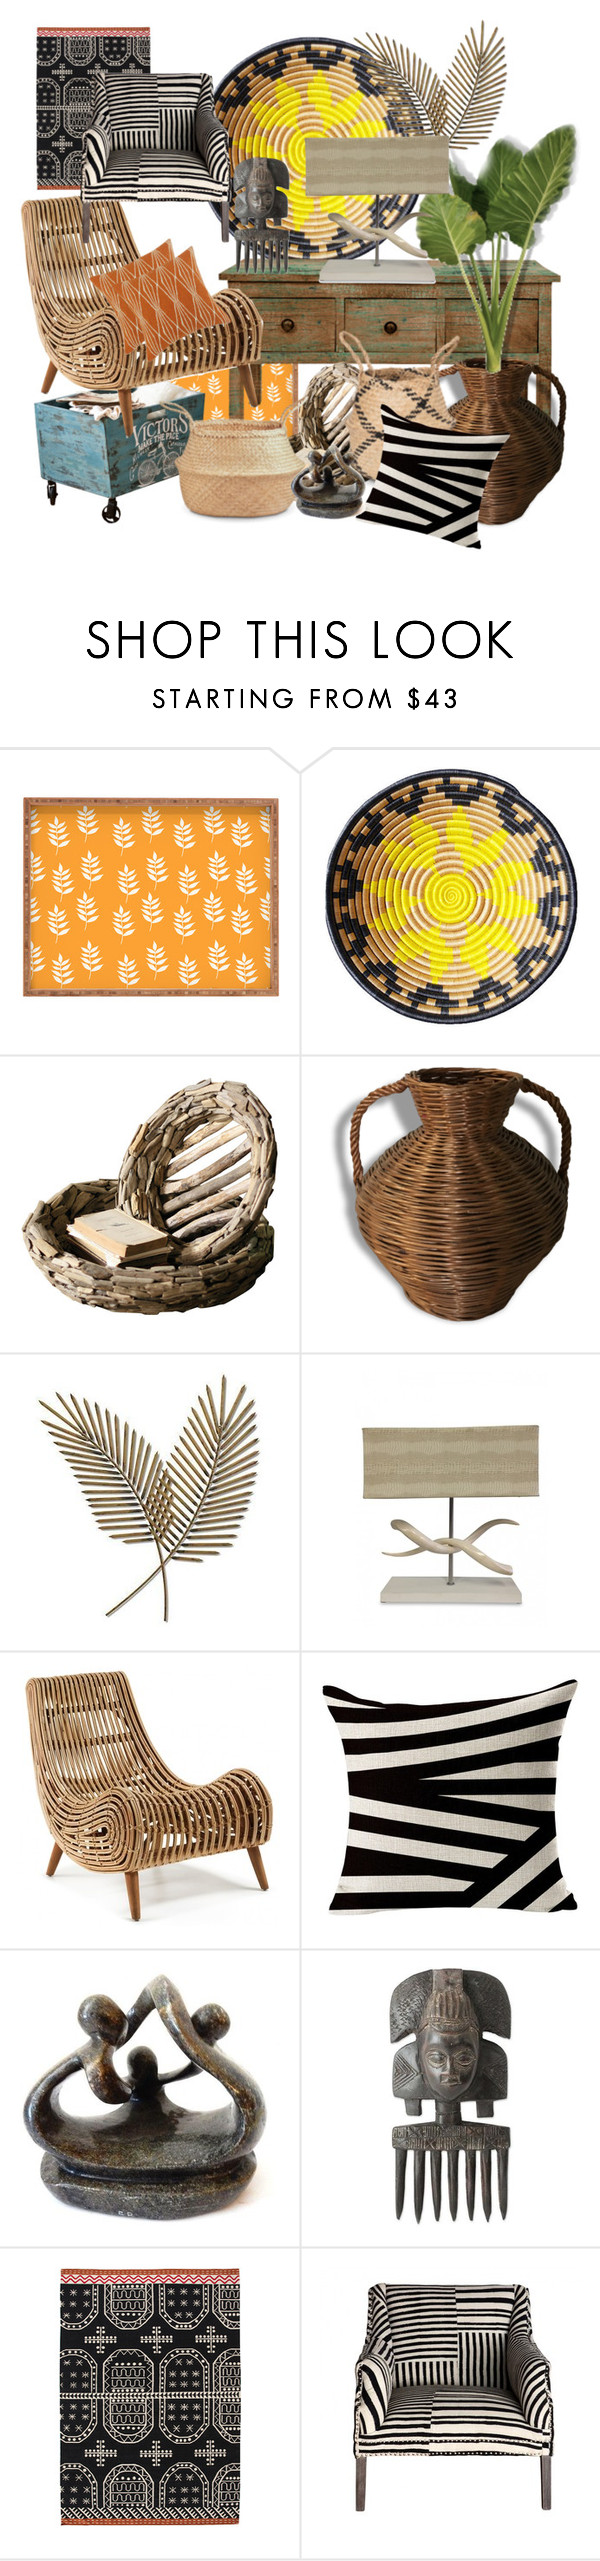 """""""You don't have to travel the world...but it helps"""" by lvoth ❤ liked on Polyvore featuring interior, interiors, interior design, home, home decor, interior decorating, Dot & Bo, Indego Africa, Jarre and Korg"""